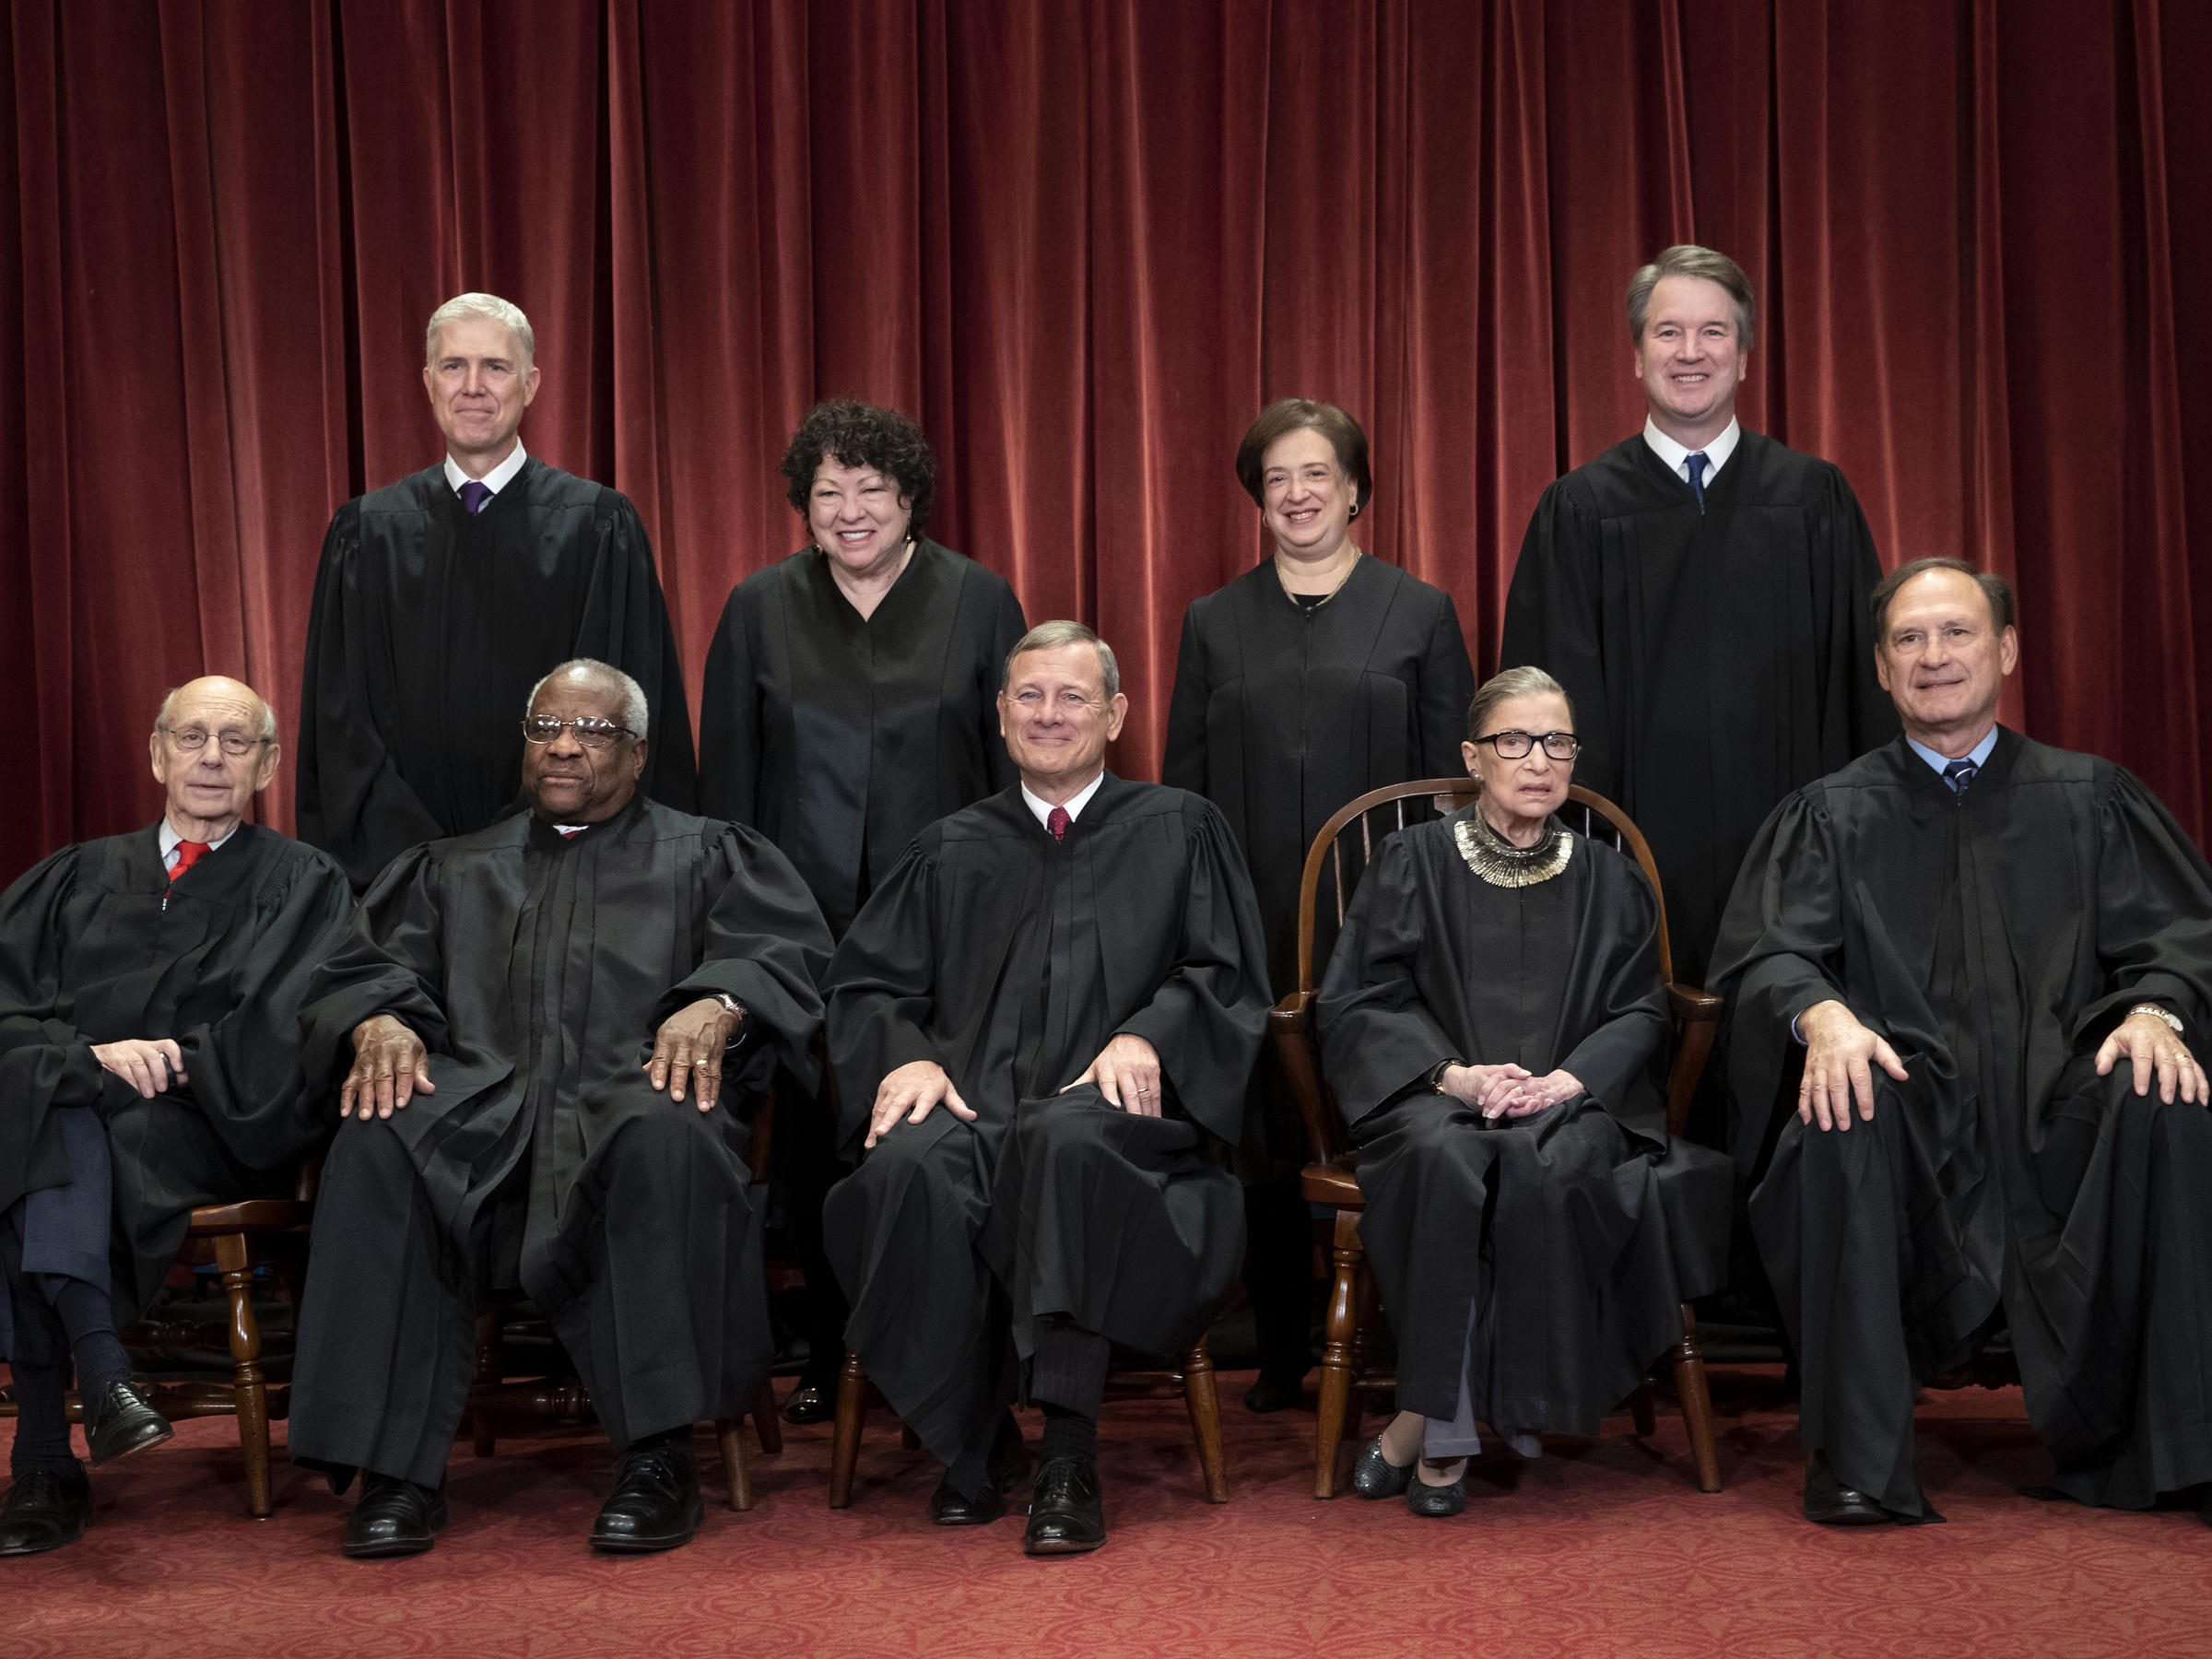 US Supreme Court judges show they won't be taken for granted